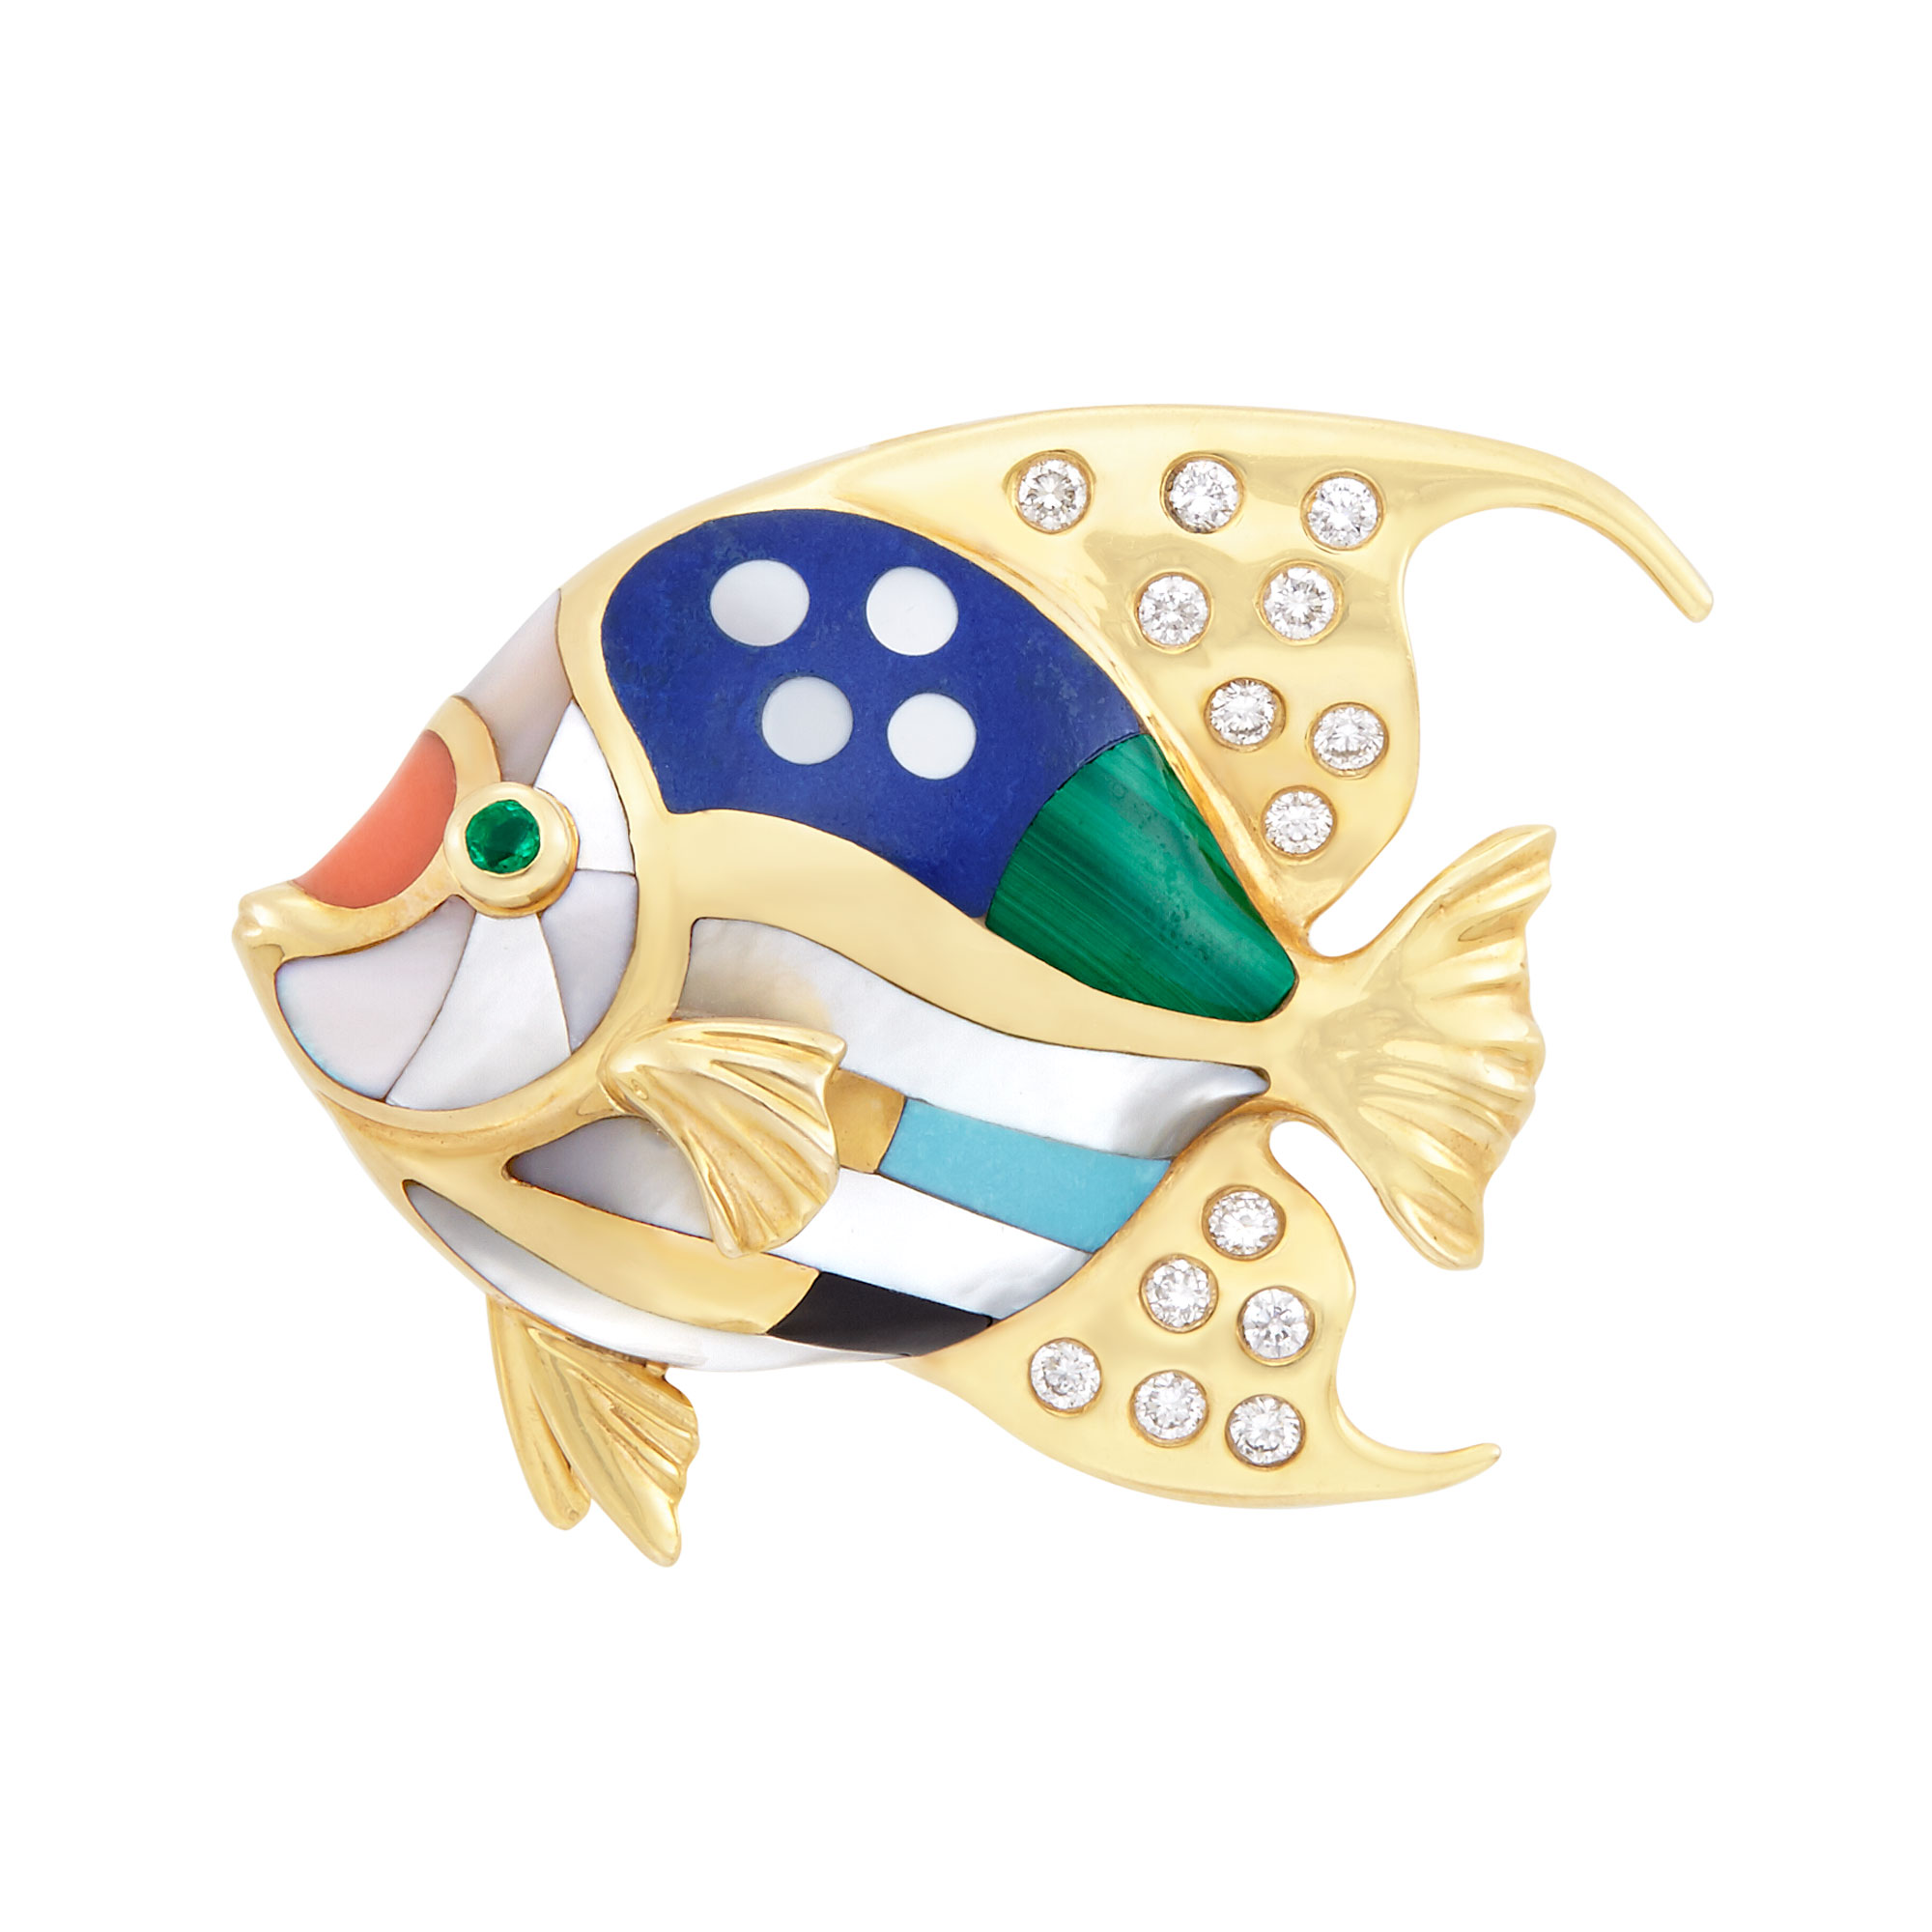 Lot image - Gold, Hardstone, Mother-of-Pearl and Diamond Fish Pendant-Brooch, Asch Grossbardt